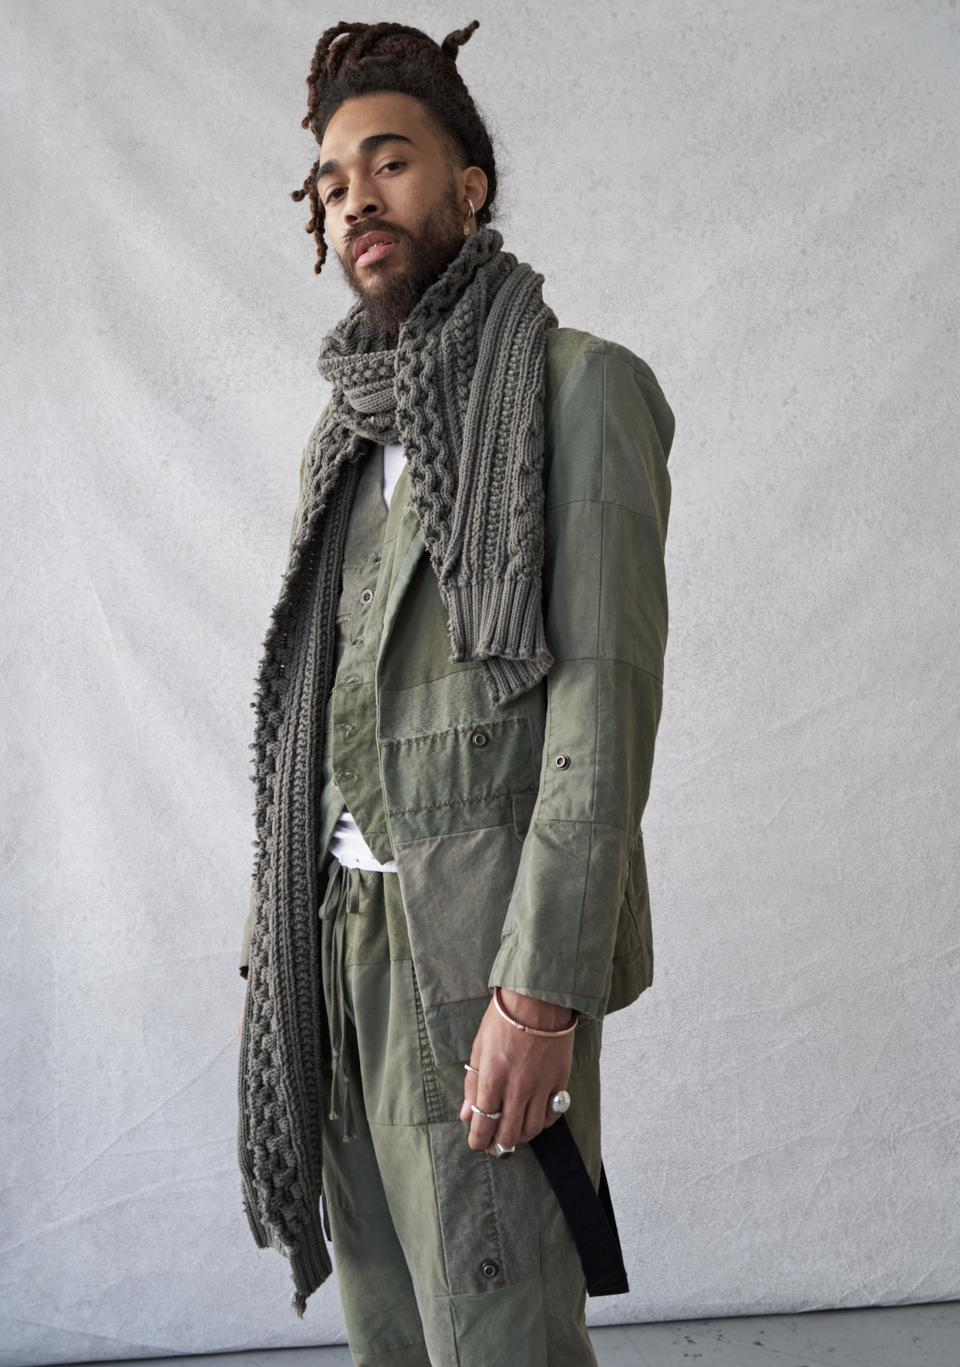 Scrapwork garments are produced by using wastage that would typically be directed to a landfill. Instead, thousands of scraps were given to local quilters to create yardage that we refer to as Greg Lauren Scrapwork. These pieces were created using the scraps of vintage U.S. Army half tents.